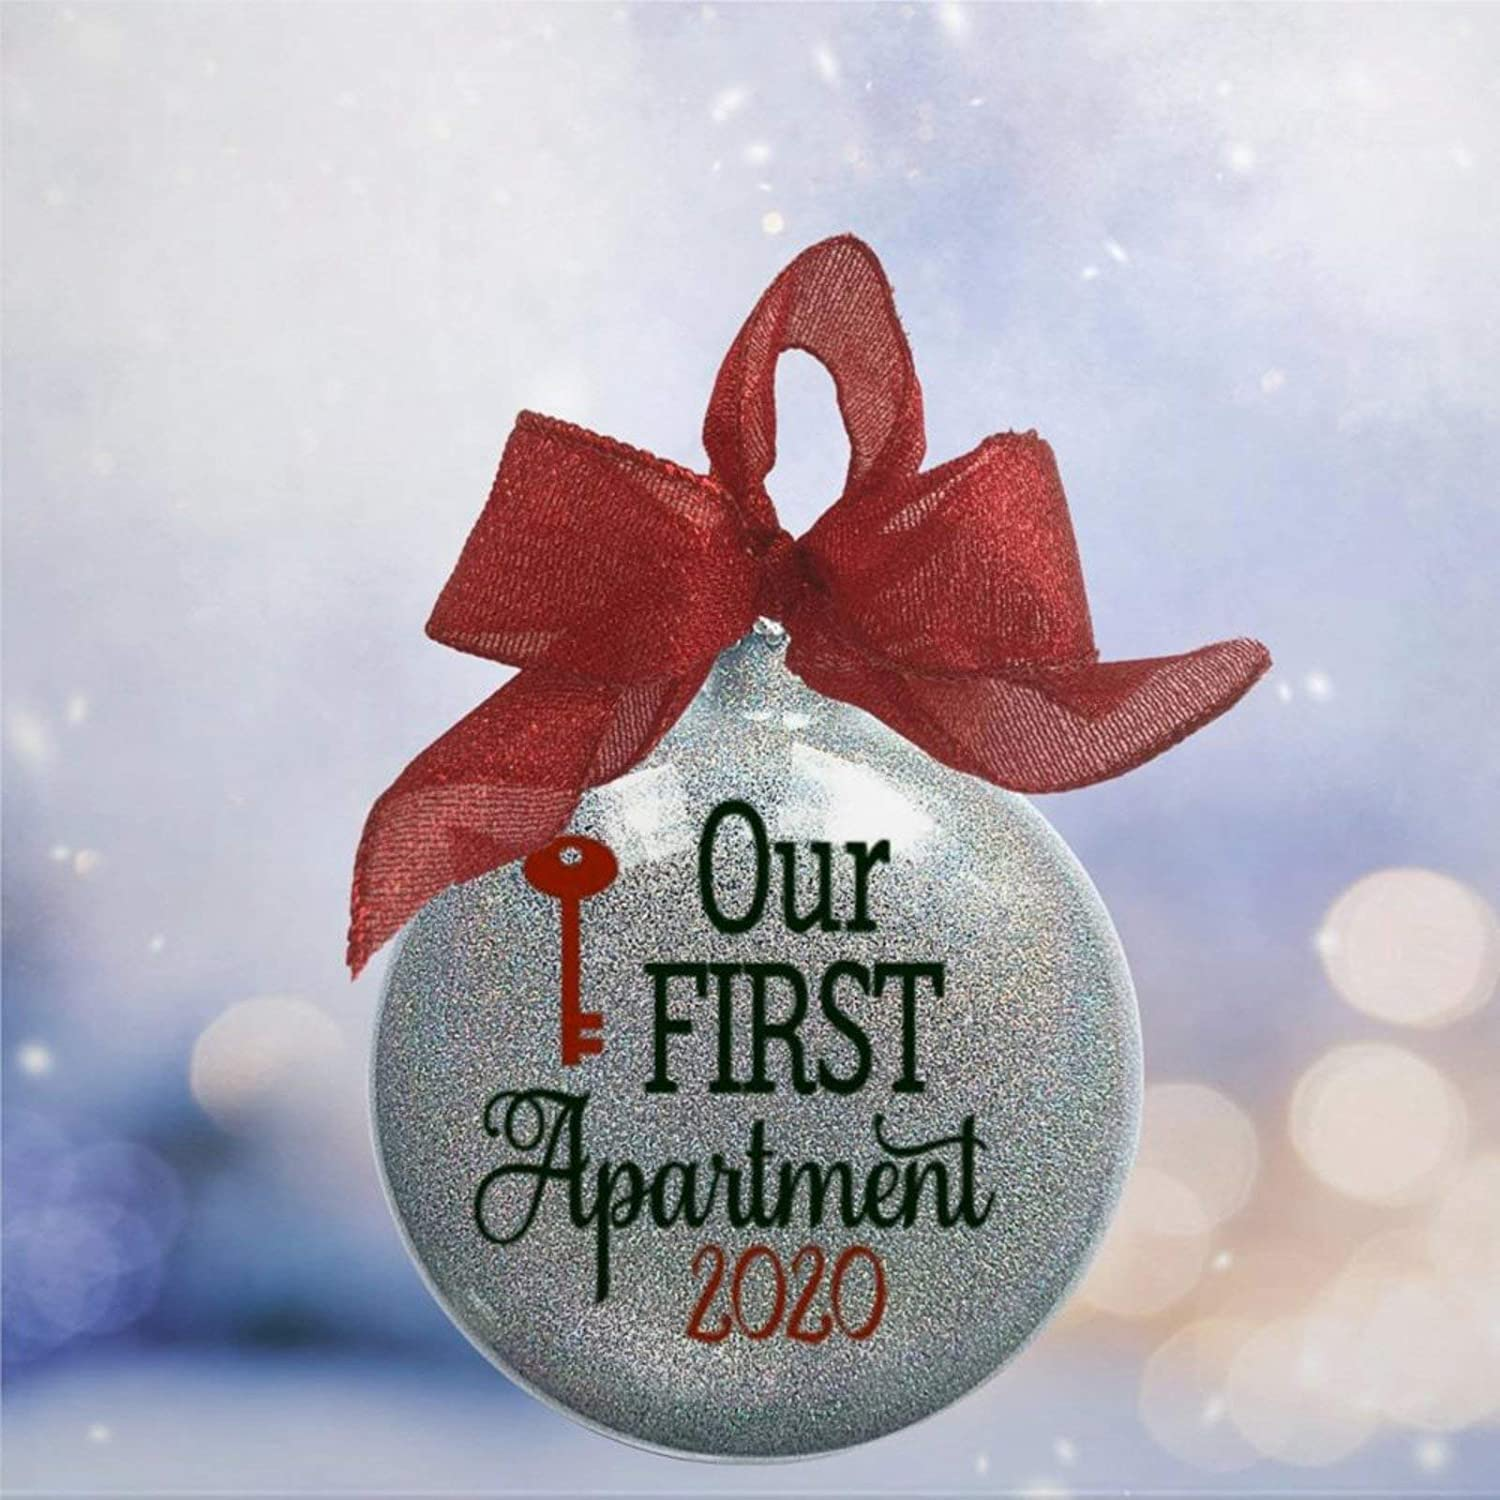 DONL9BAUER Our First Apartment Home New in Housewarming Christmas Ball&Bauble with Presents, Acrylic Christmas Ornament for Family,Friends,Couple &Engagement Party.